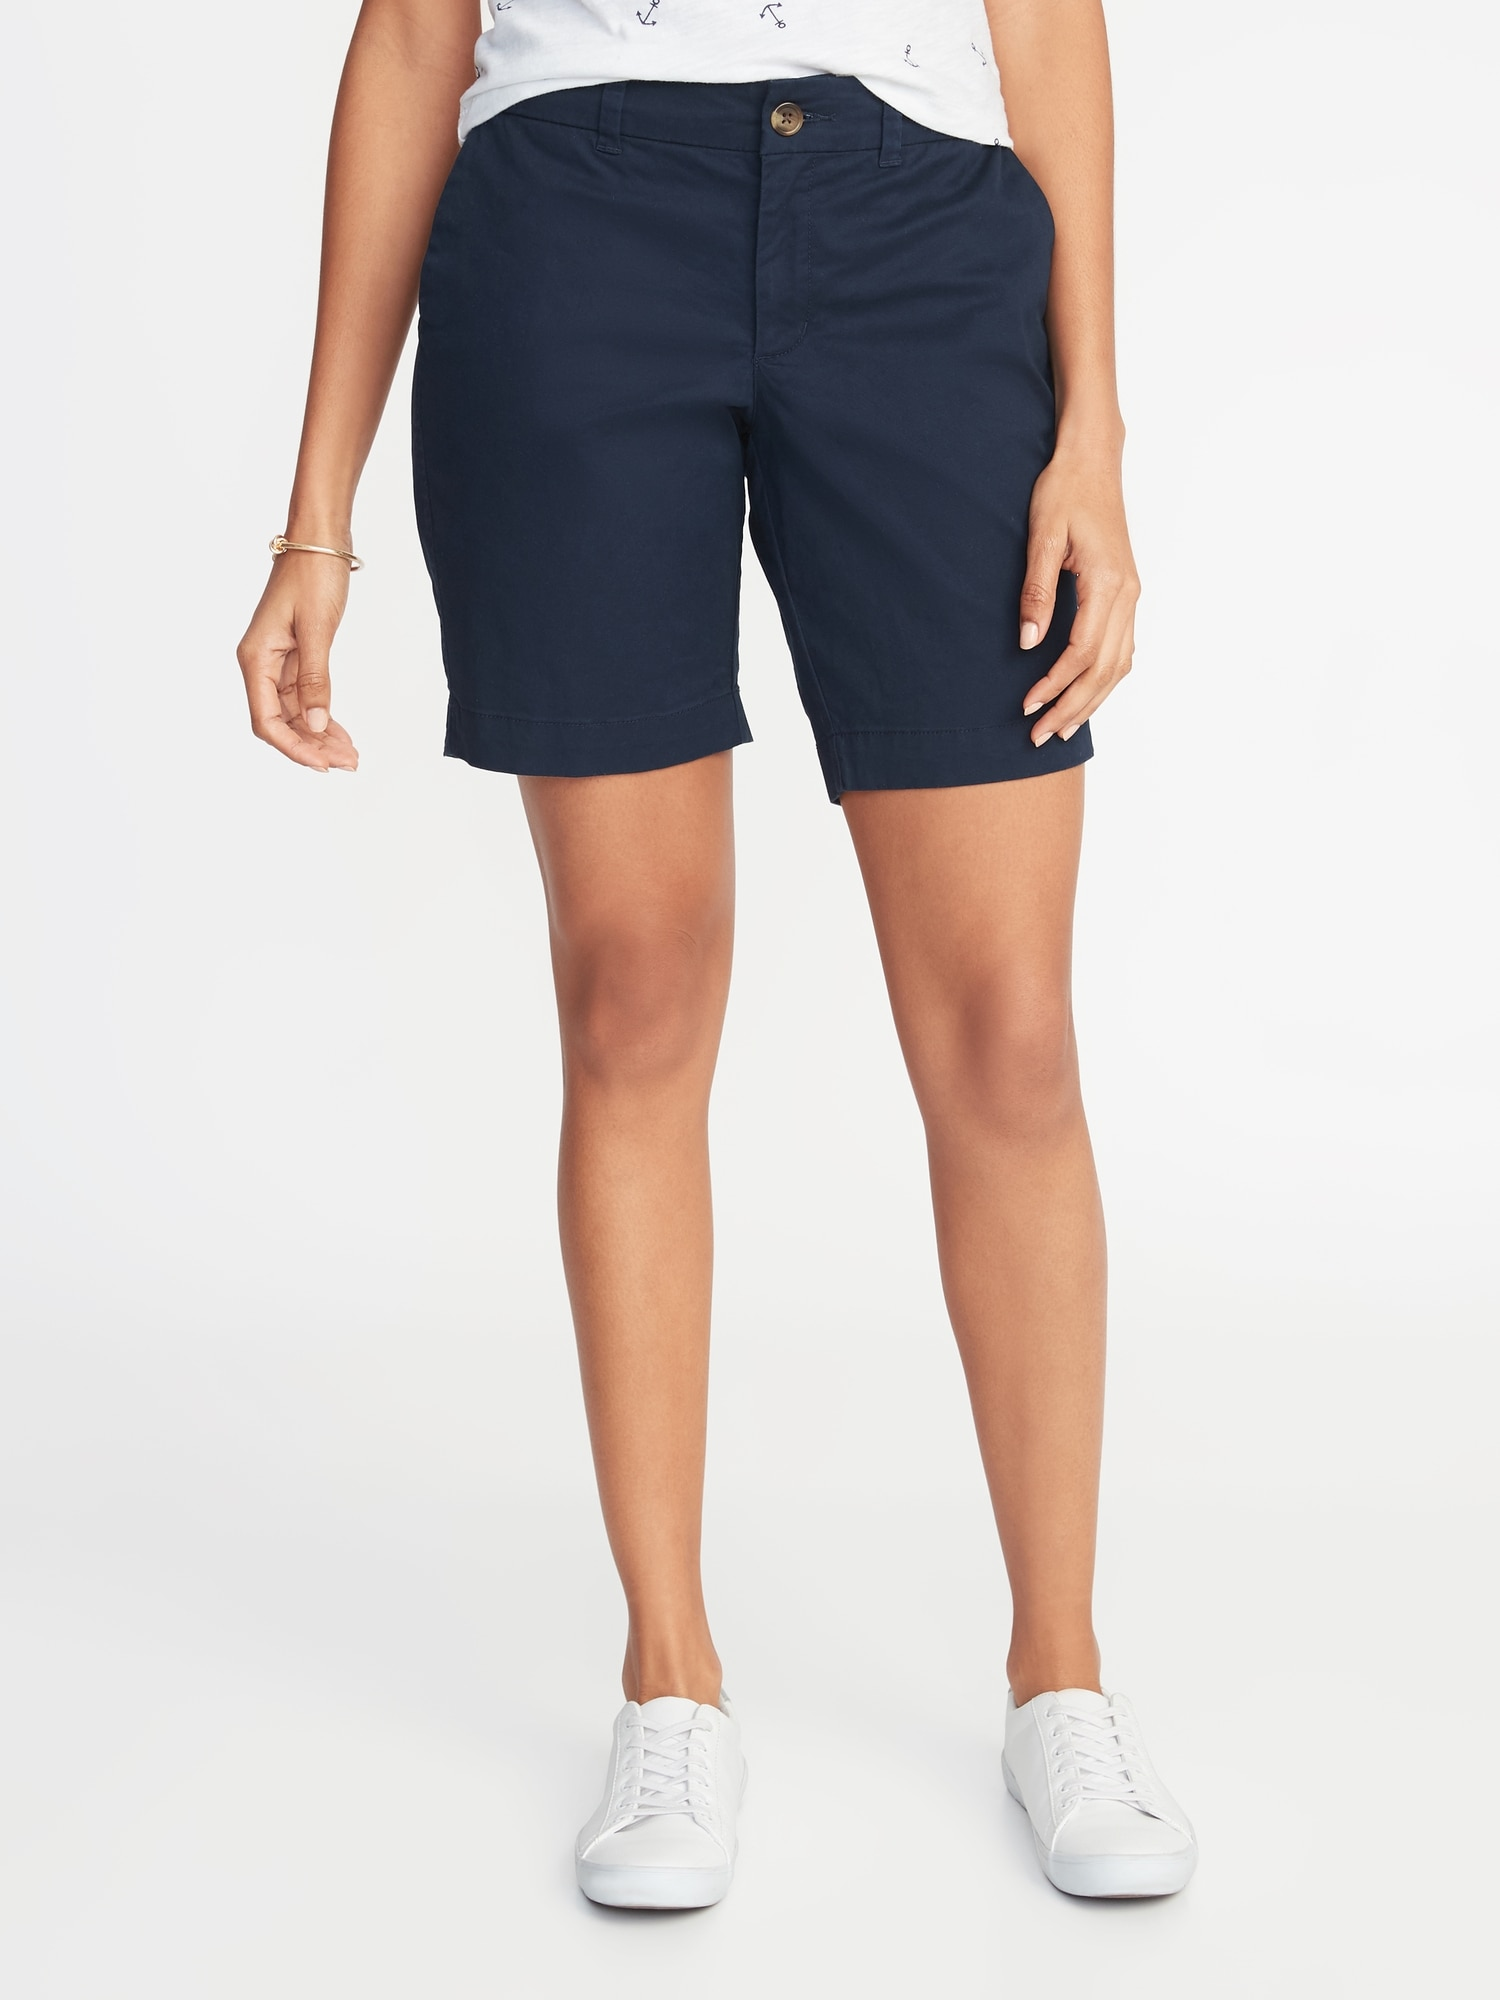 da05340b0e Mid-Rise Twill Everyday Bermuda Shorts for Women - 9-inch inseam | Old Navy